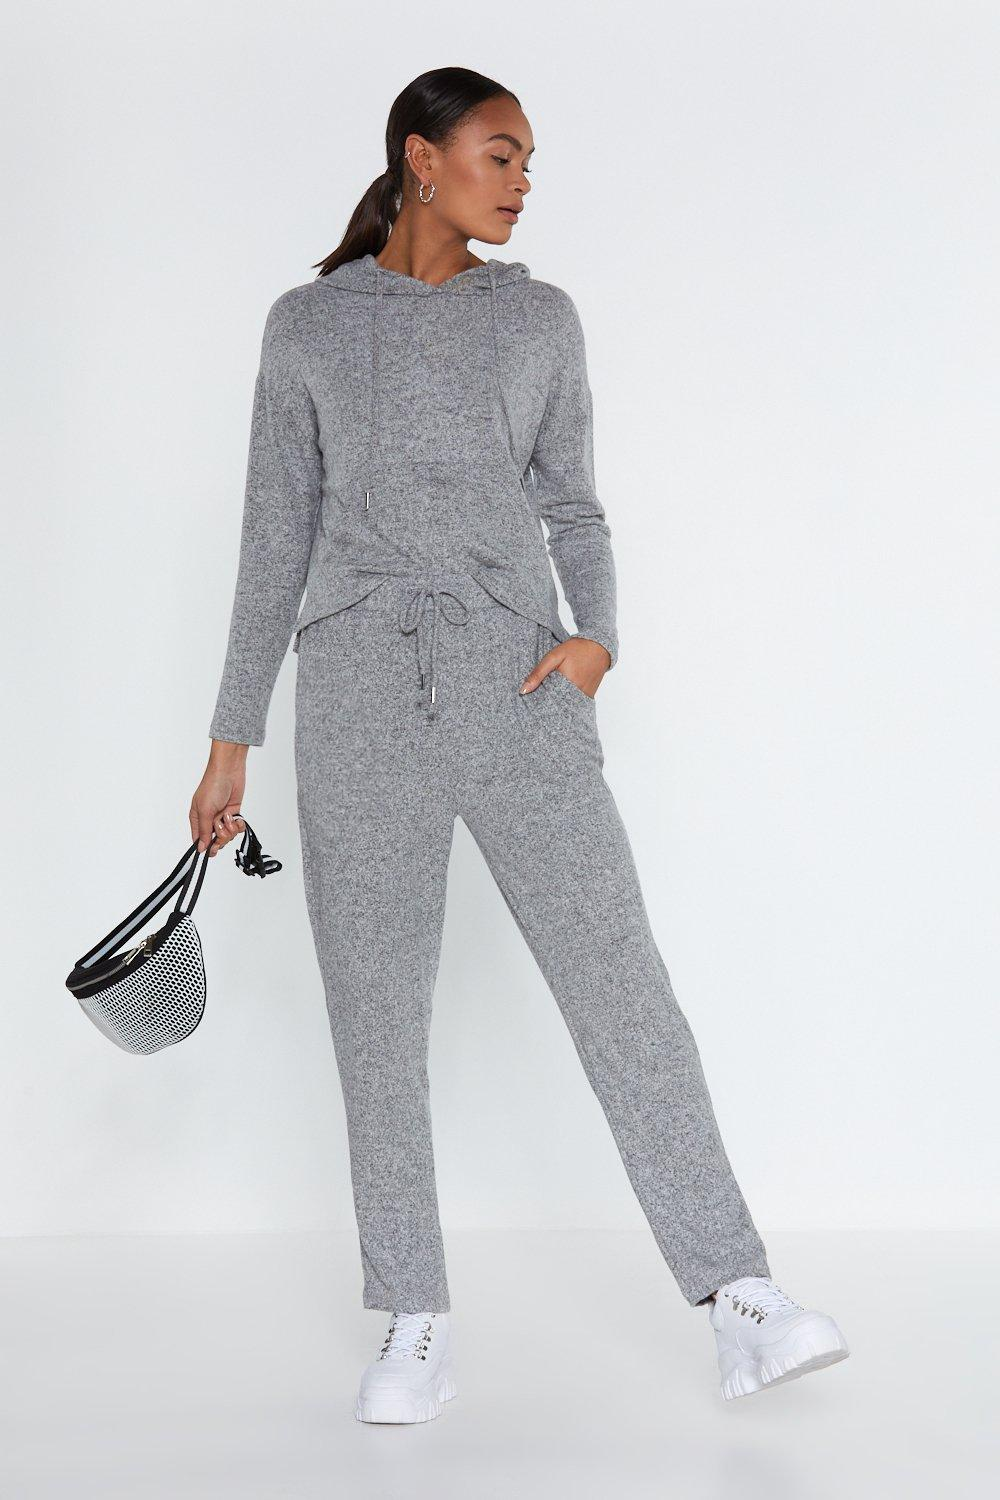 Unwind Knit Joggers | Shop Clothes at Nasty Gal!